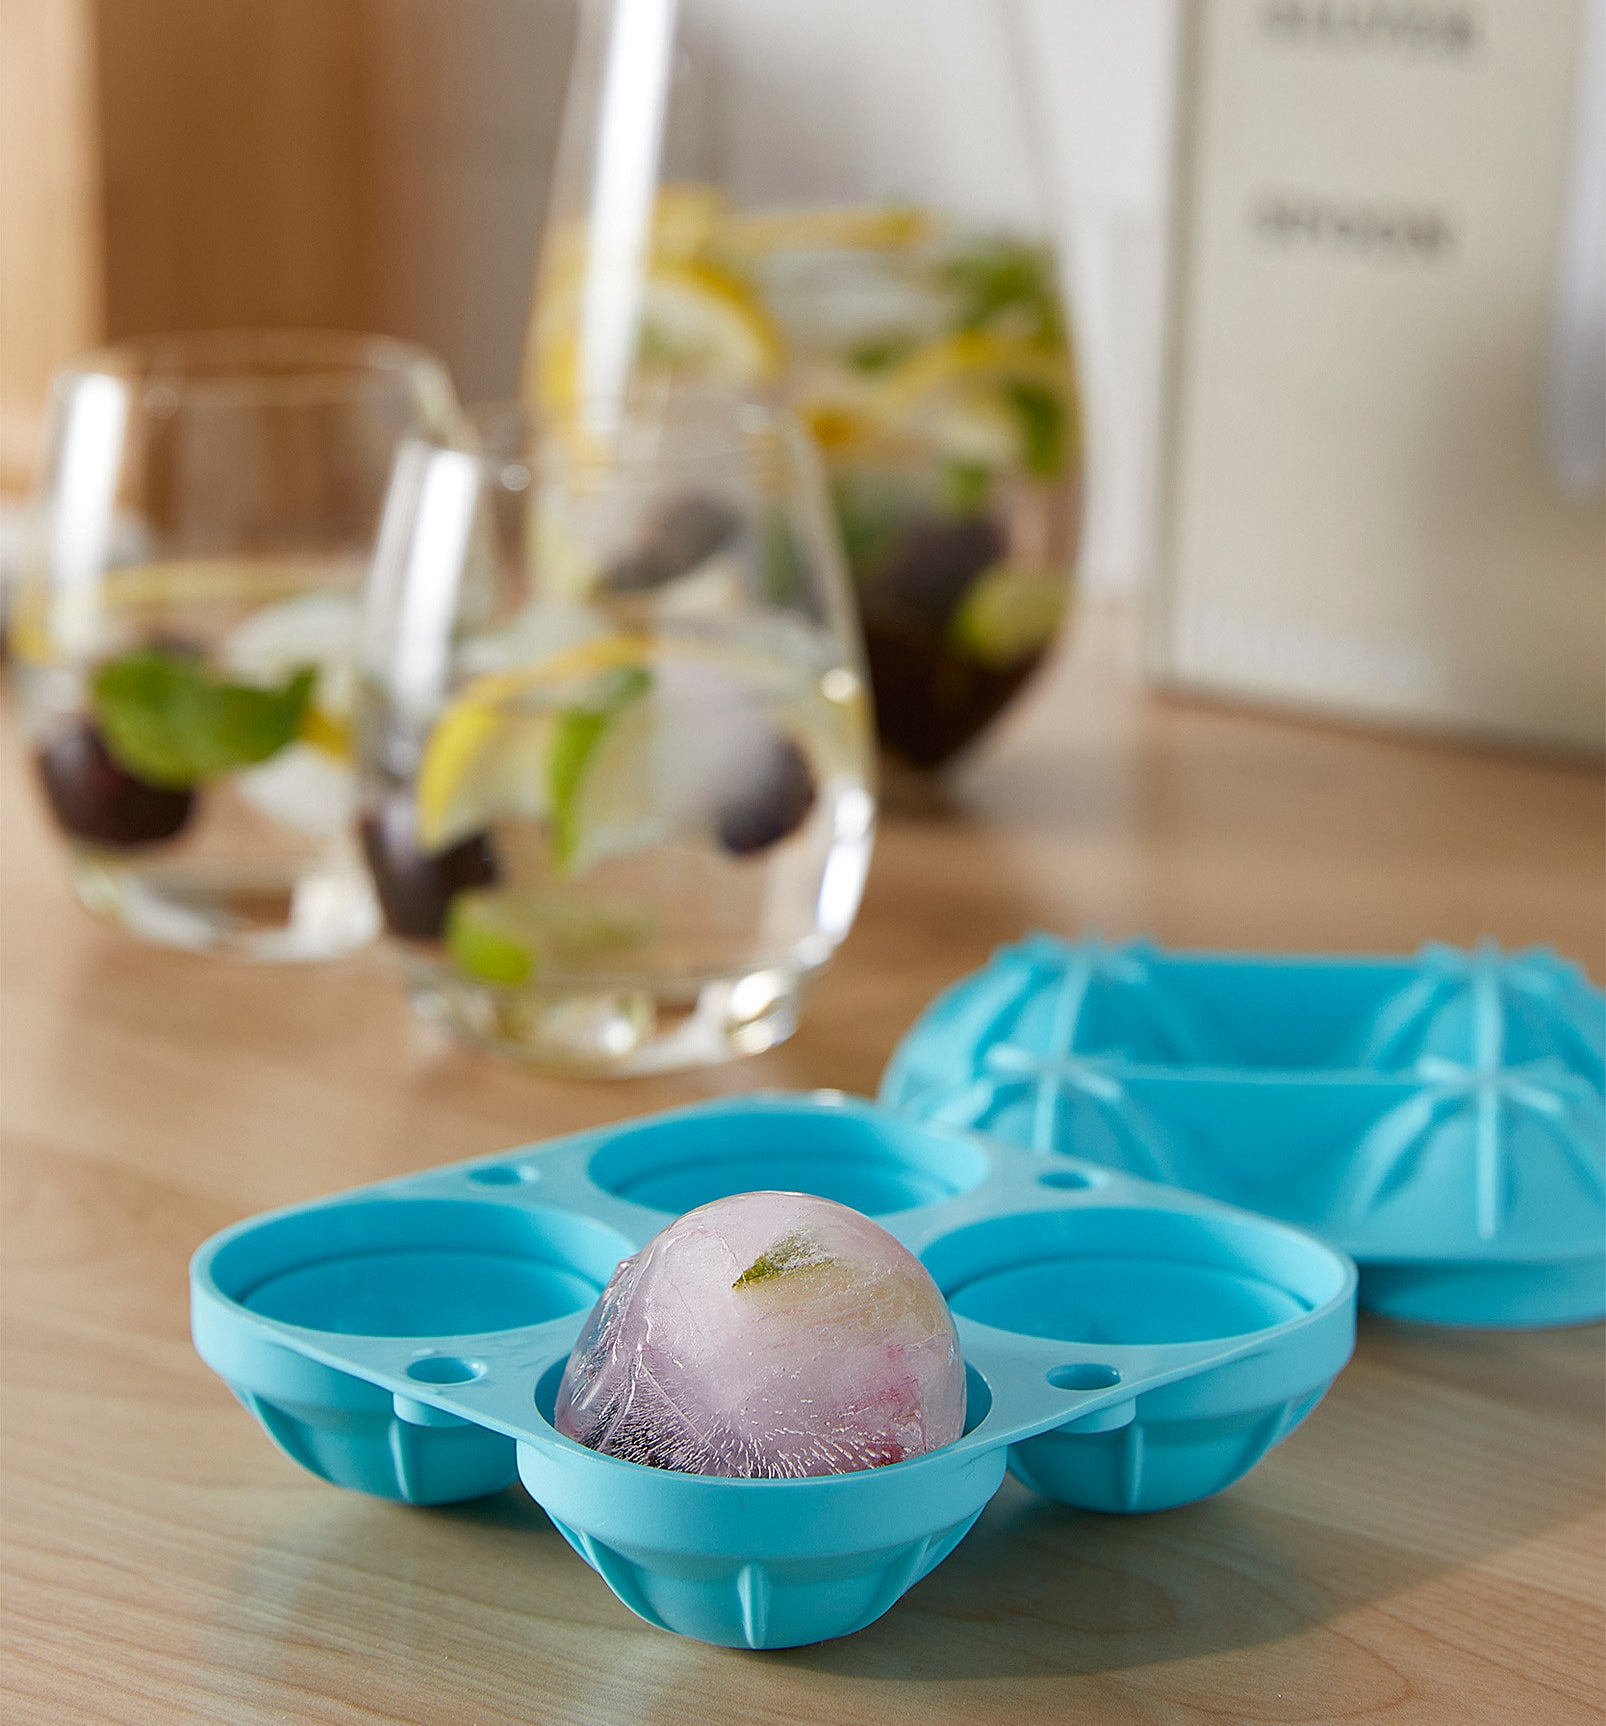 A silicone ice cube tray with a round block of ice in one slot